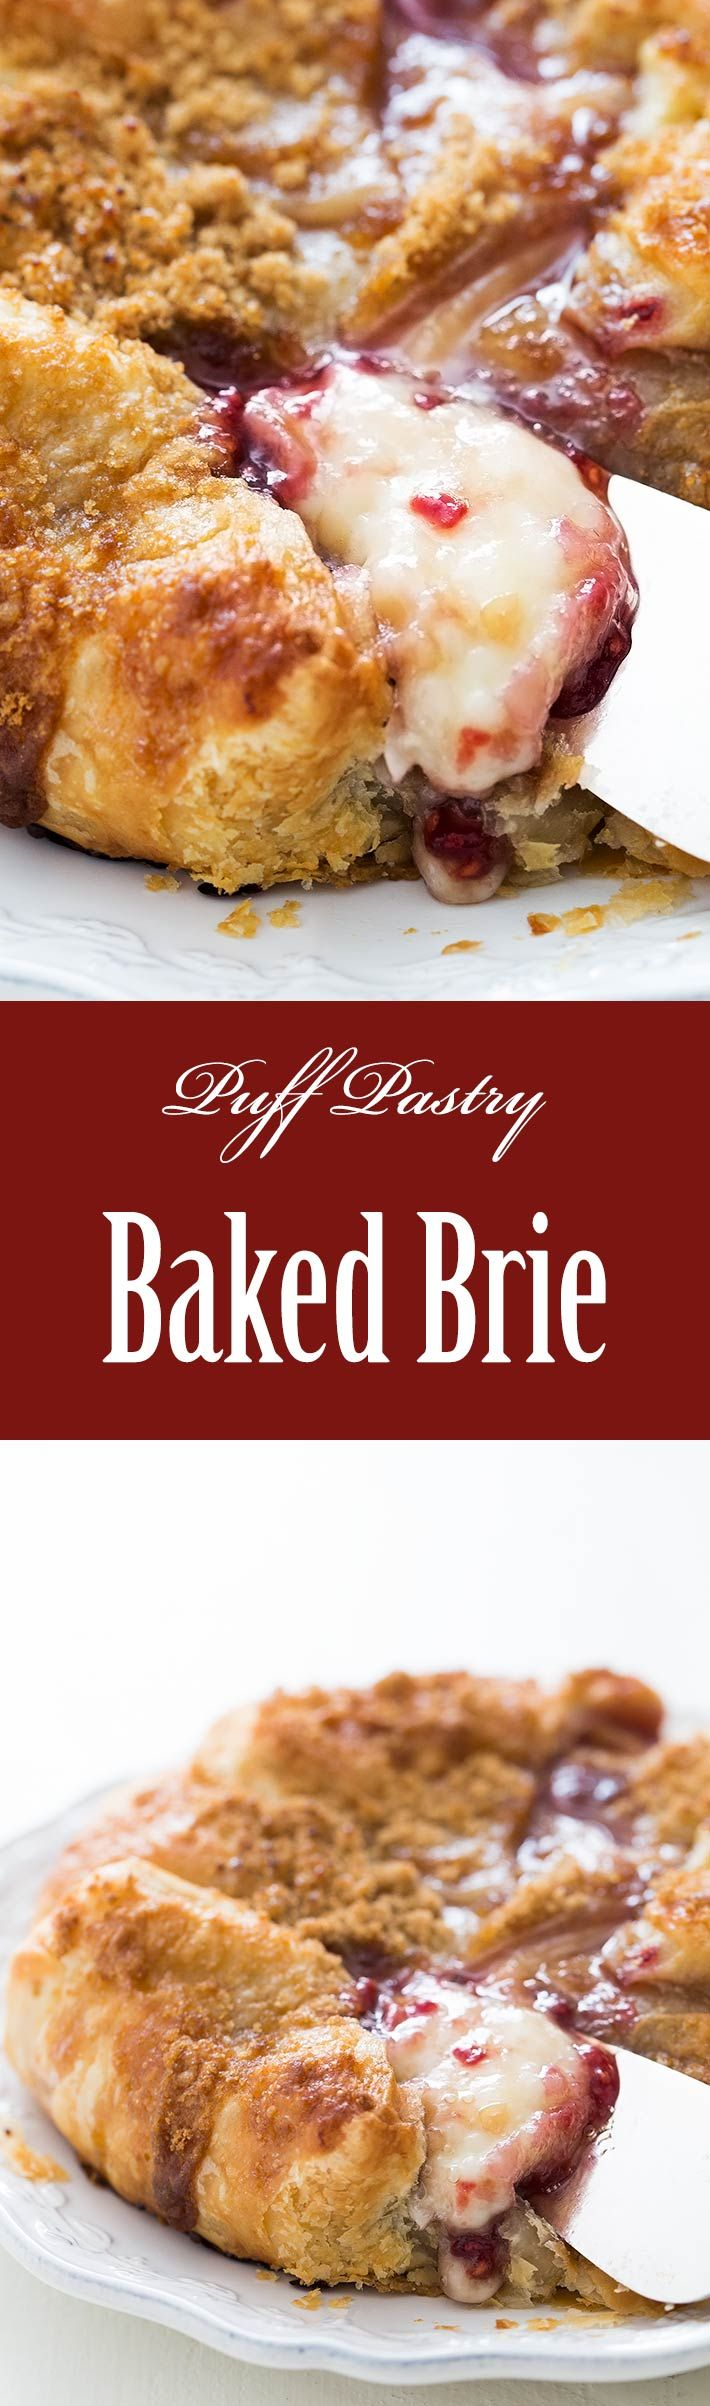 Easy Baked Brie in Puff Pastry Easiest baked brie EVER! Brie cheese topped with jam, wrapped in puff pastry or crescent roll dough, and baked until melty. So easy to make and absolutely delicious. A real crowd pleaser! Serve with crackers or apple slices. On